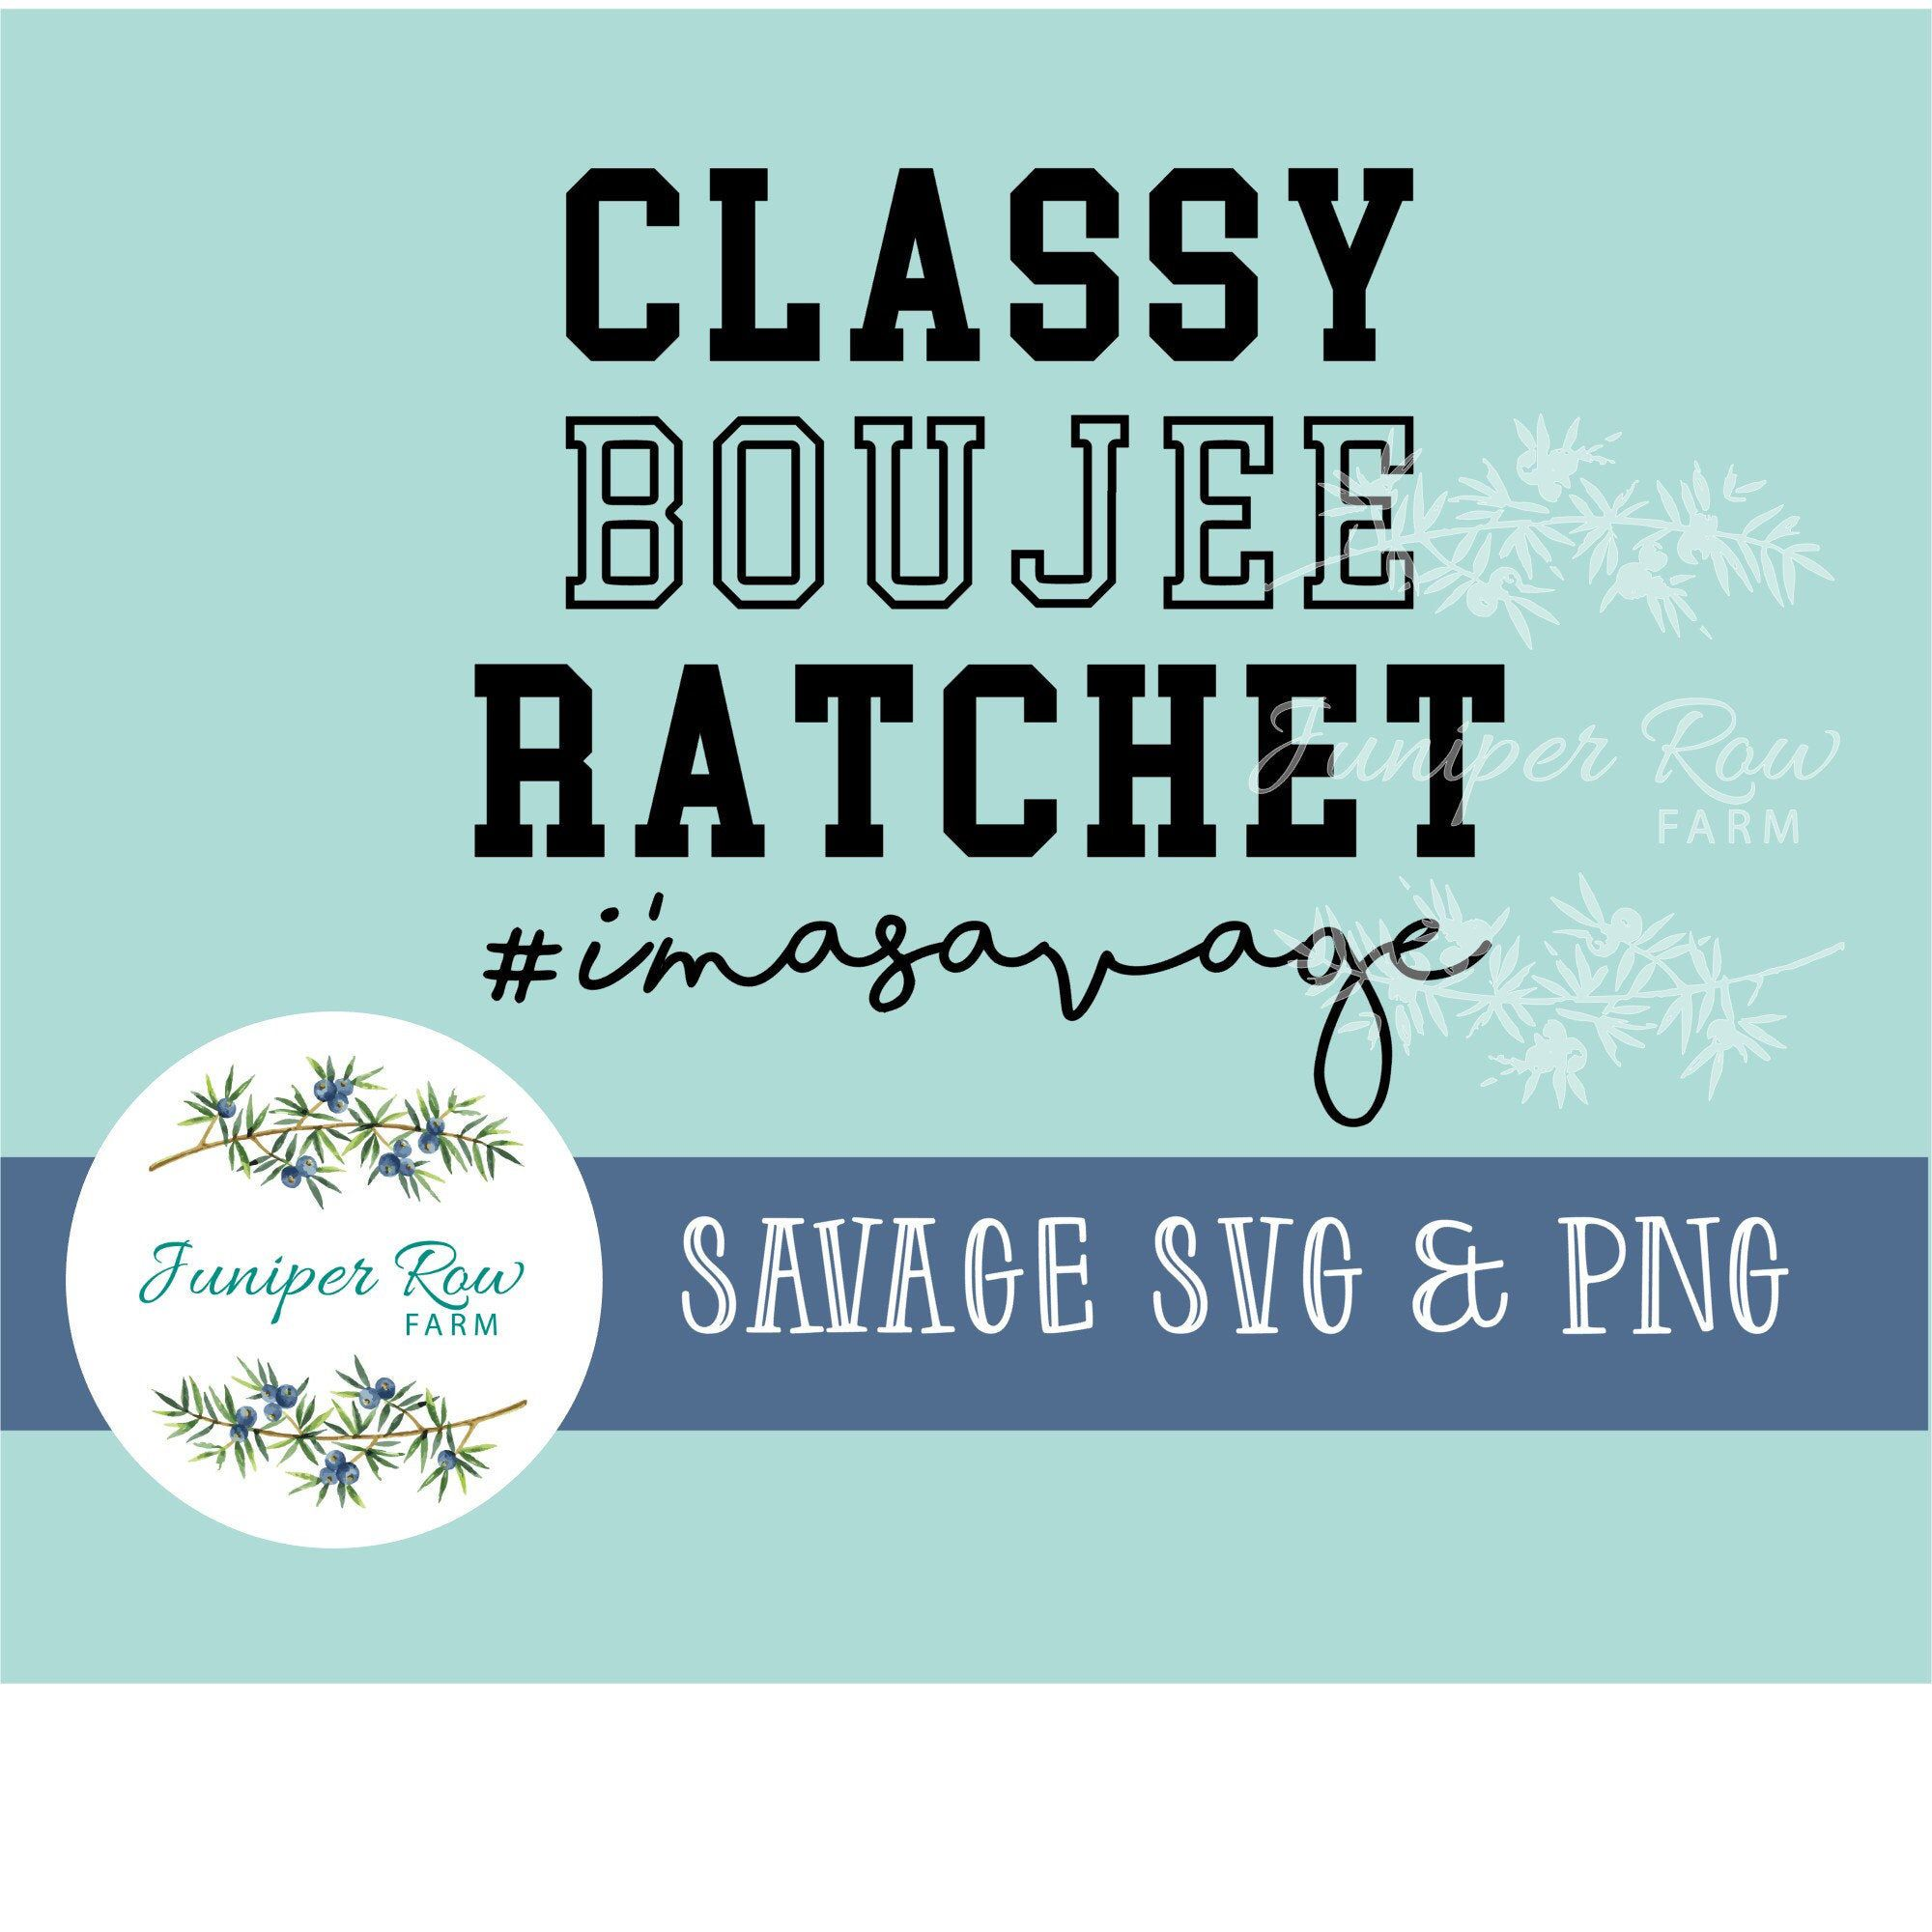 Classy Boujee Ratchet Savage svg png digital file Etsy